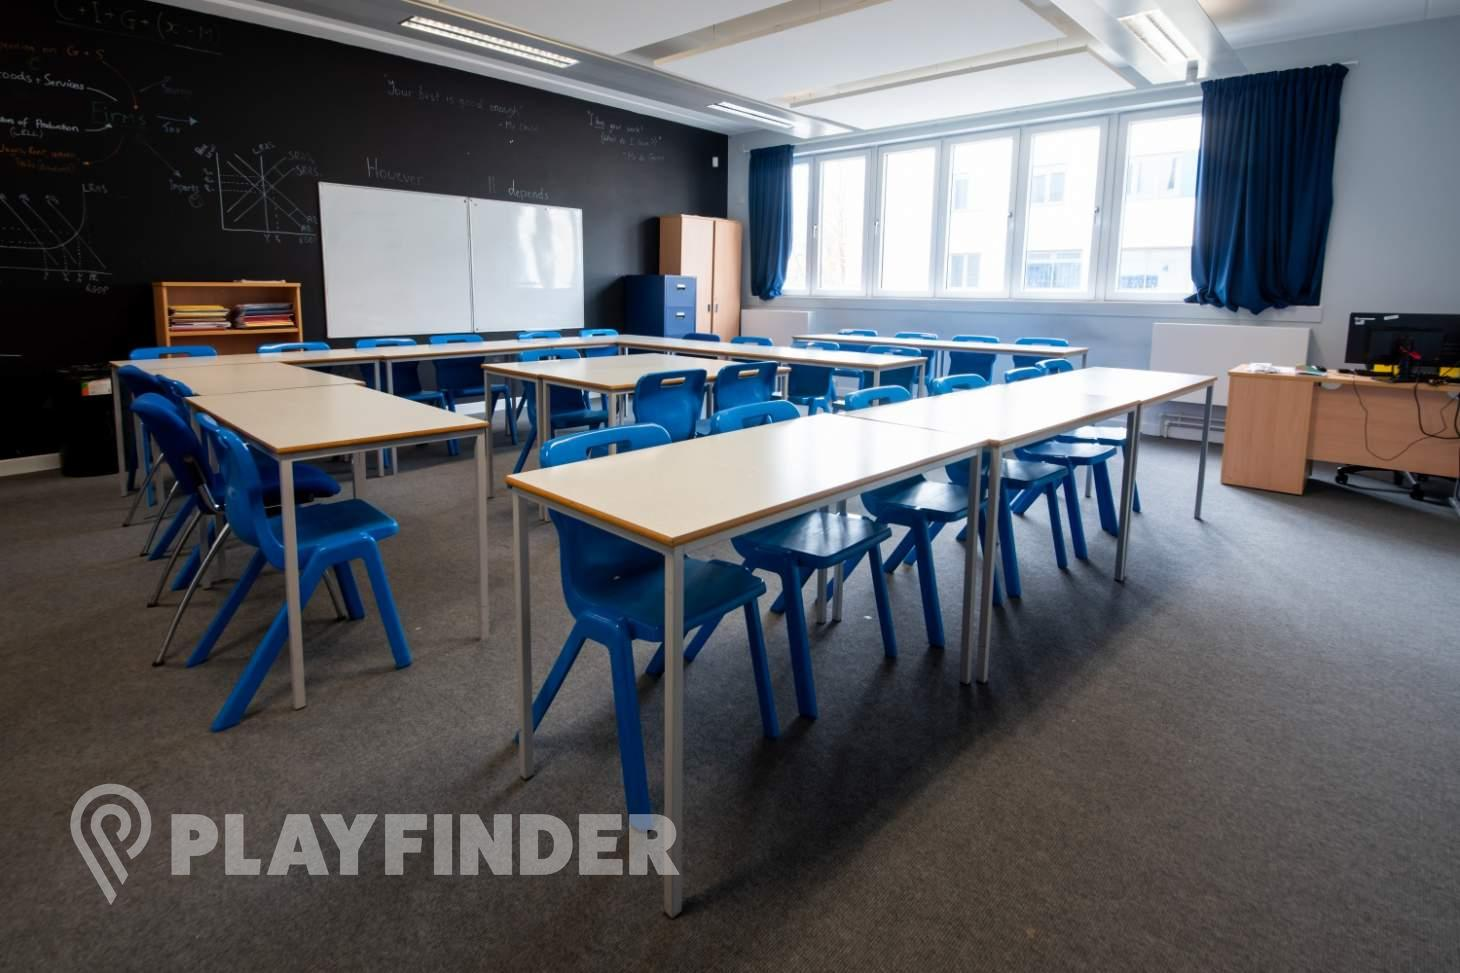 Harris Academy St Johns Wood Meeting room space hire